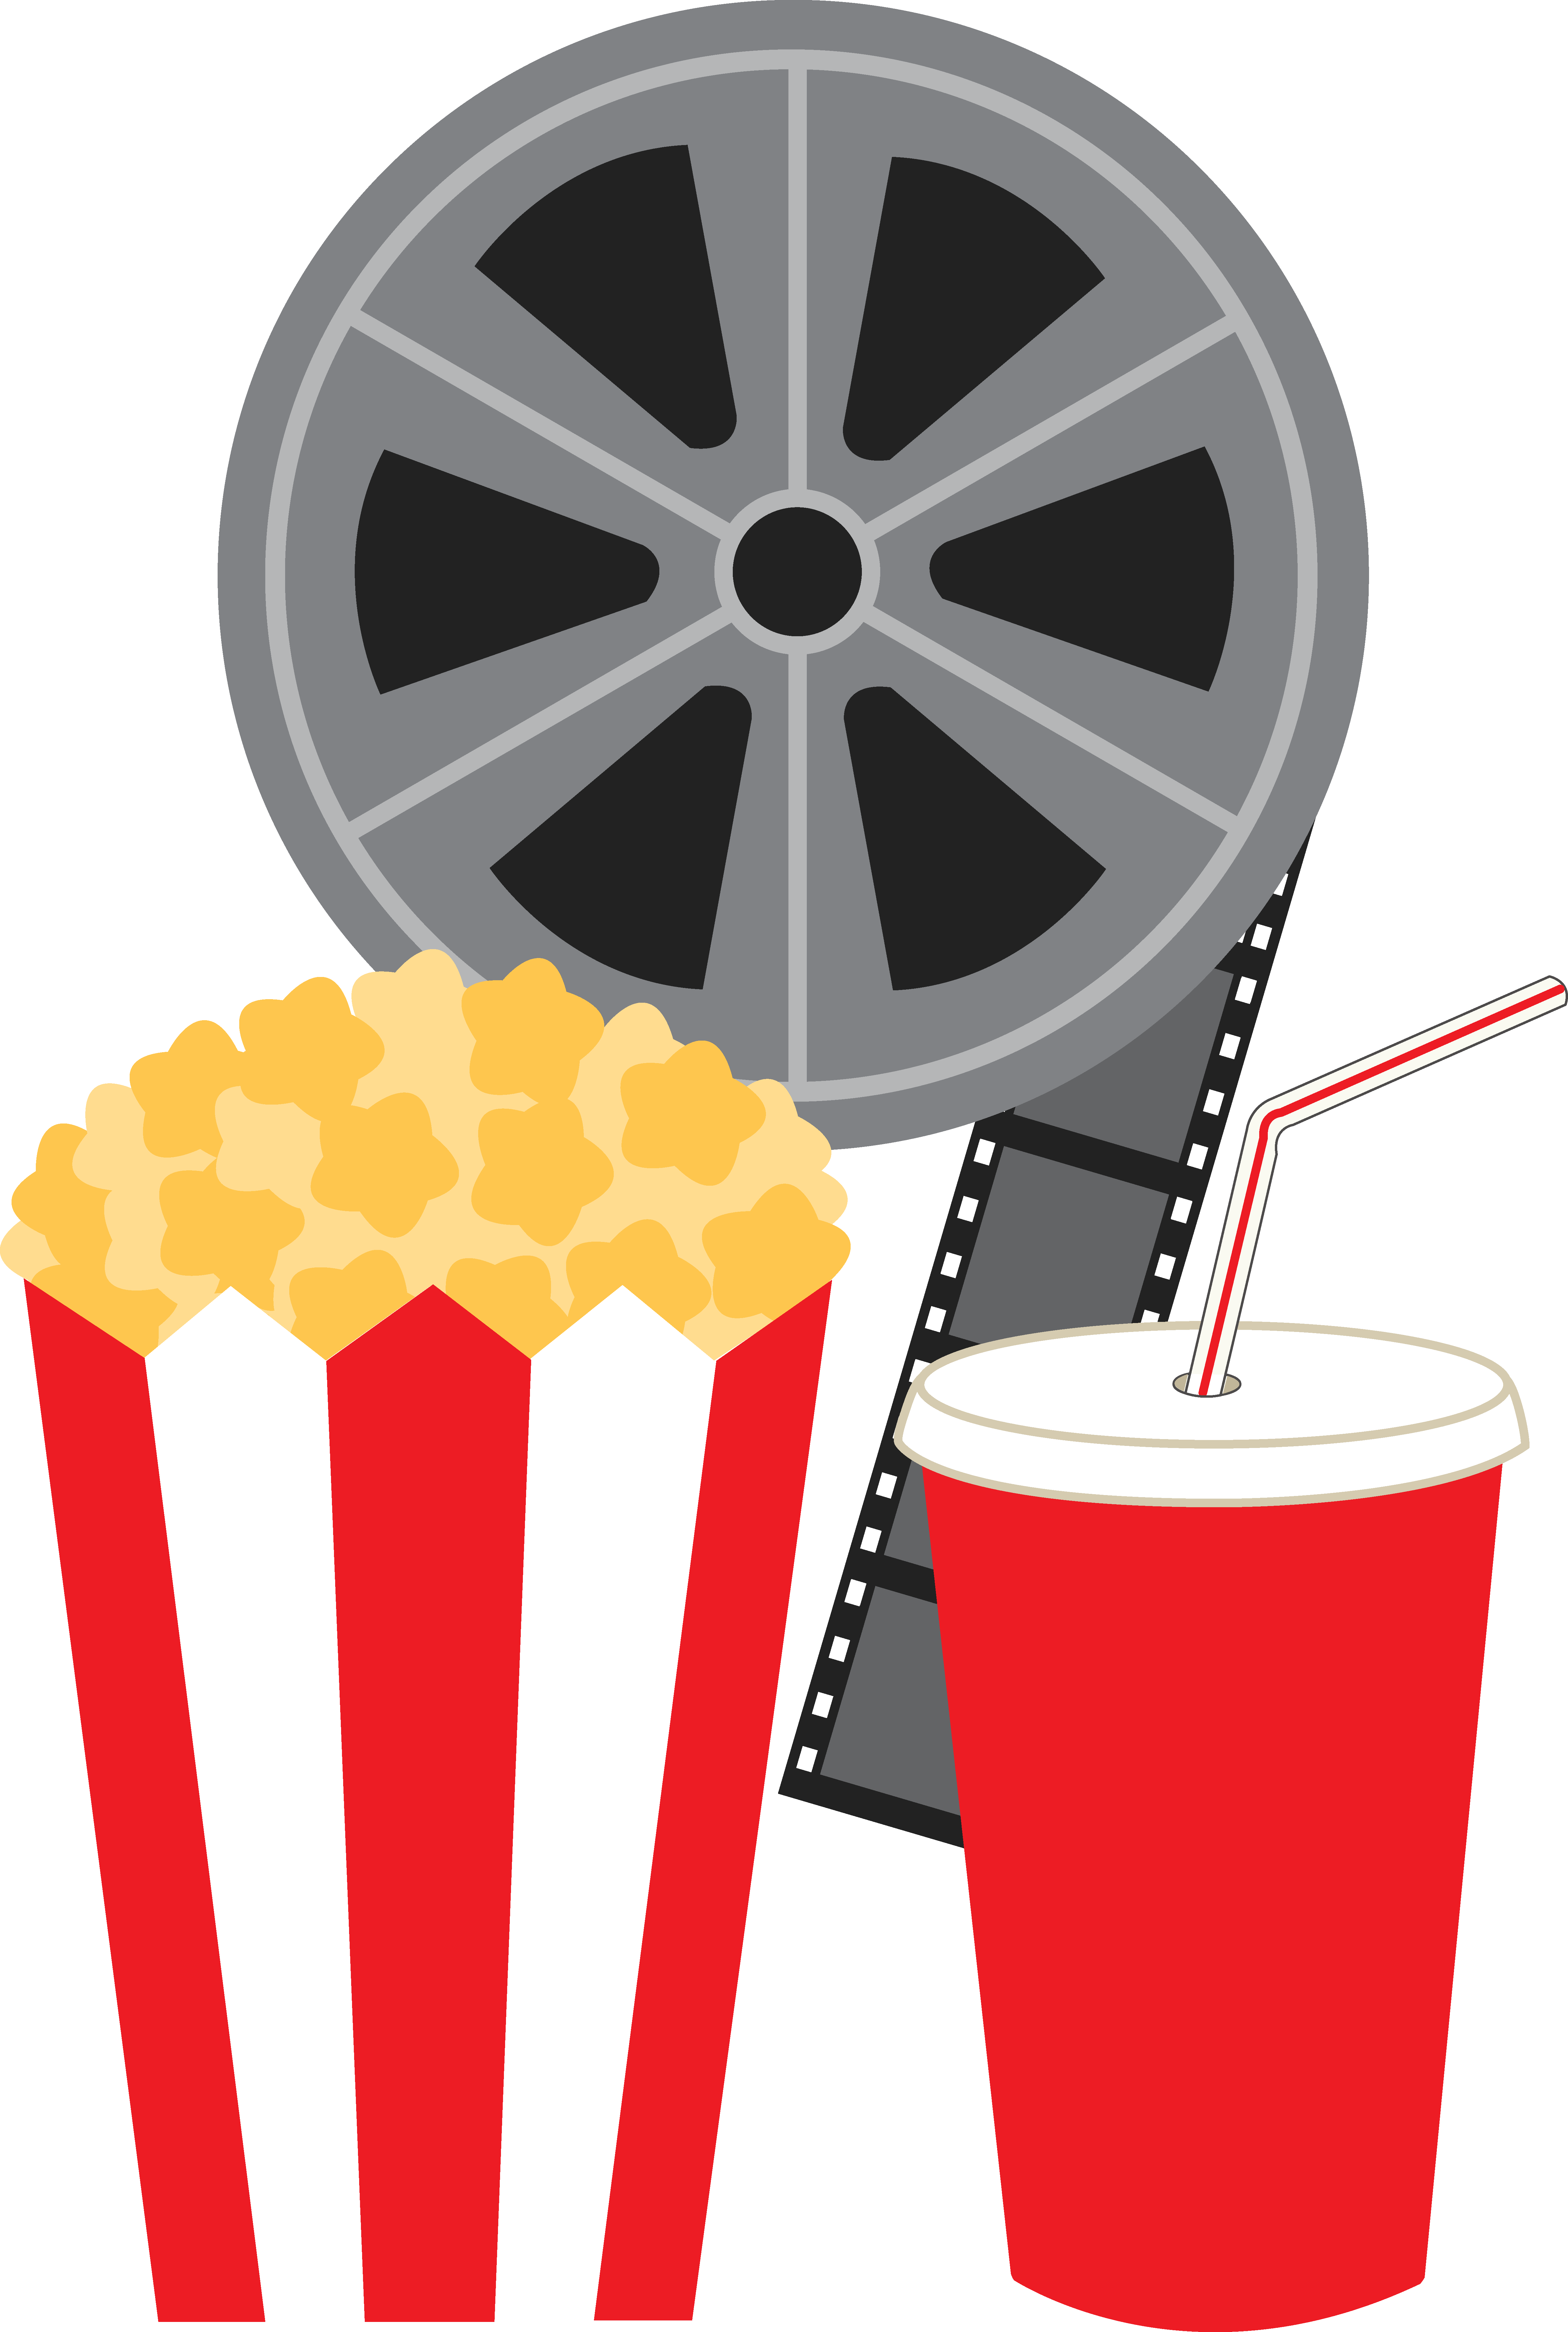 Movies clipart movie real.